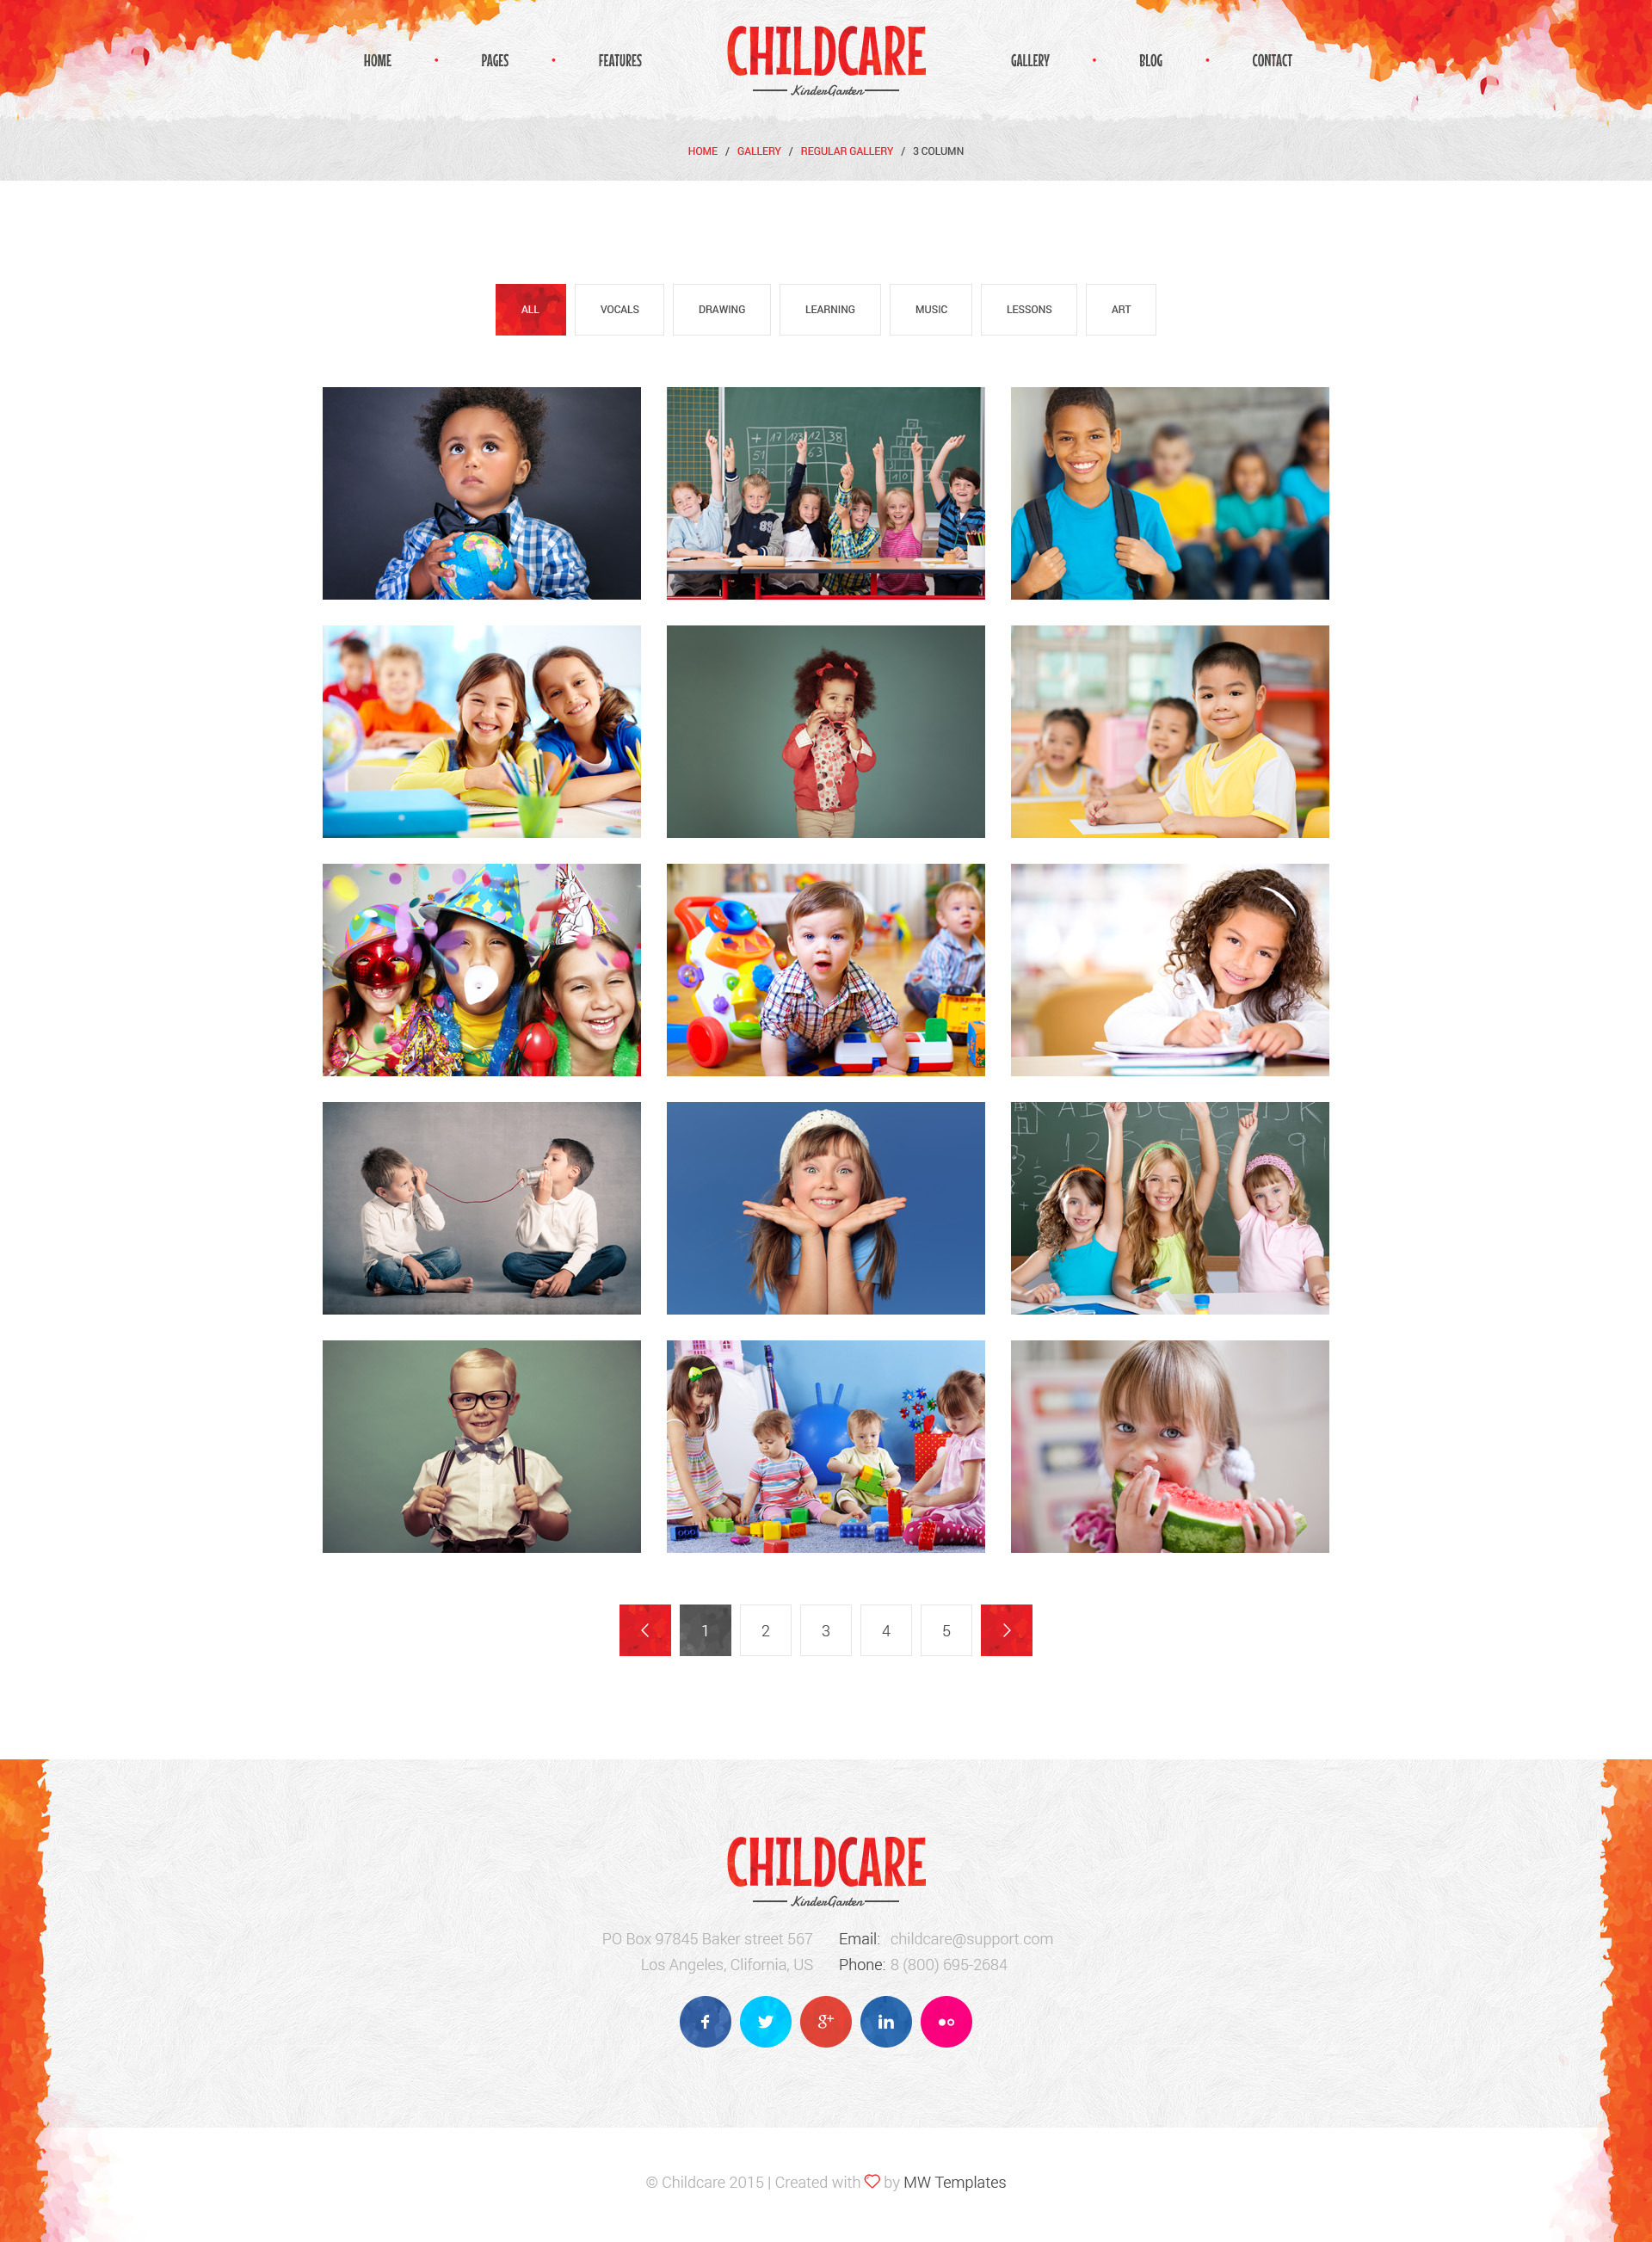 child care children kindergarten psd template by mwtemplates child care children kindergarten psd template